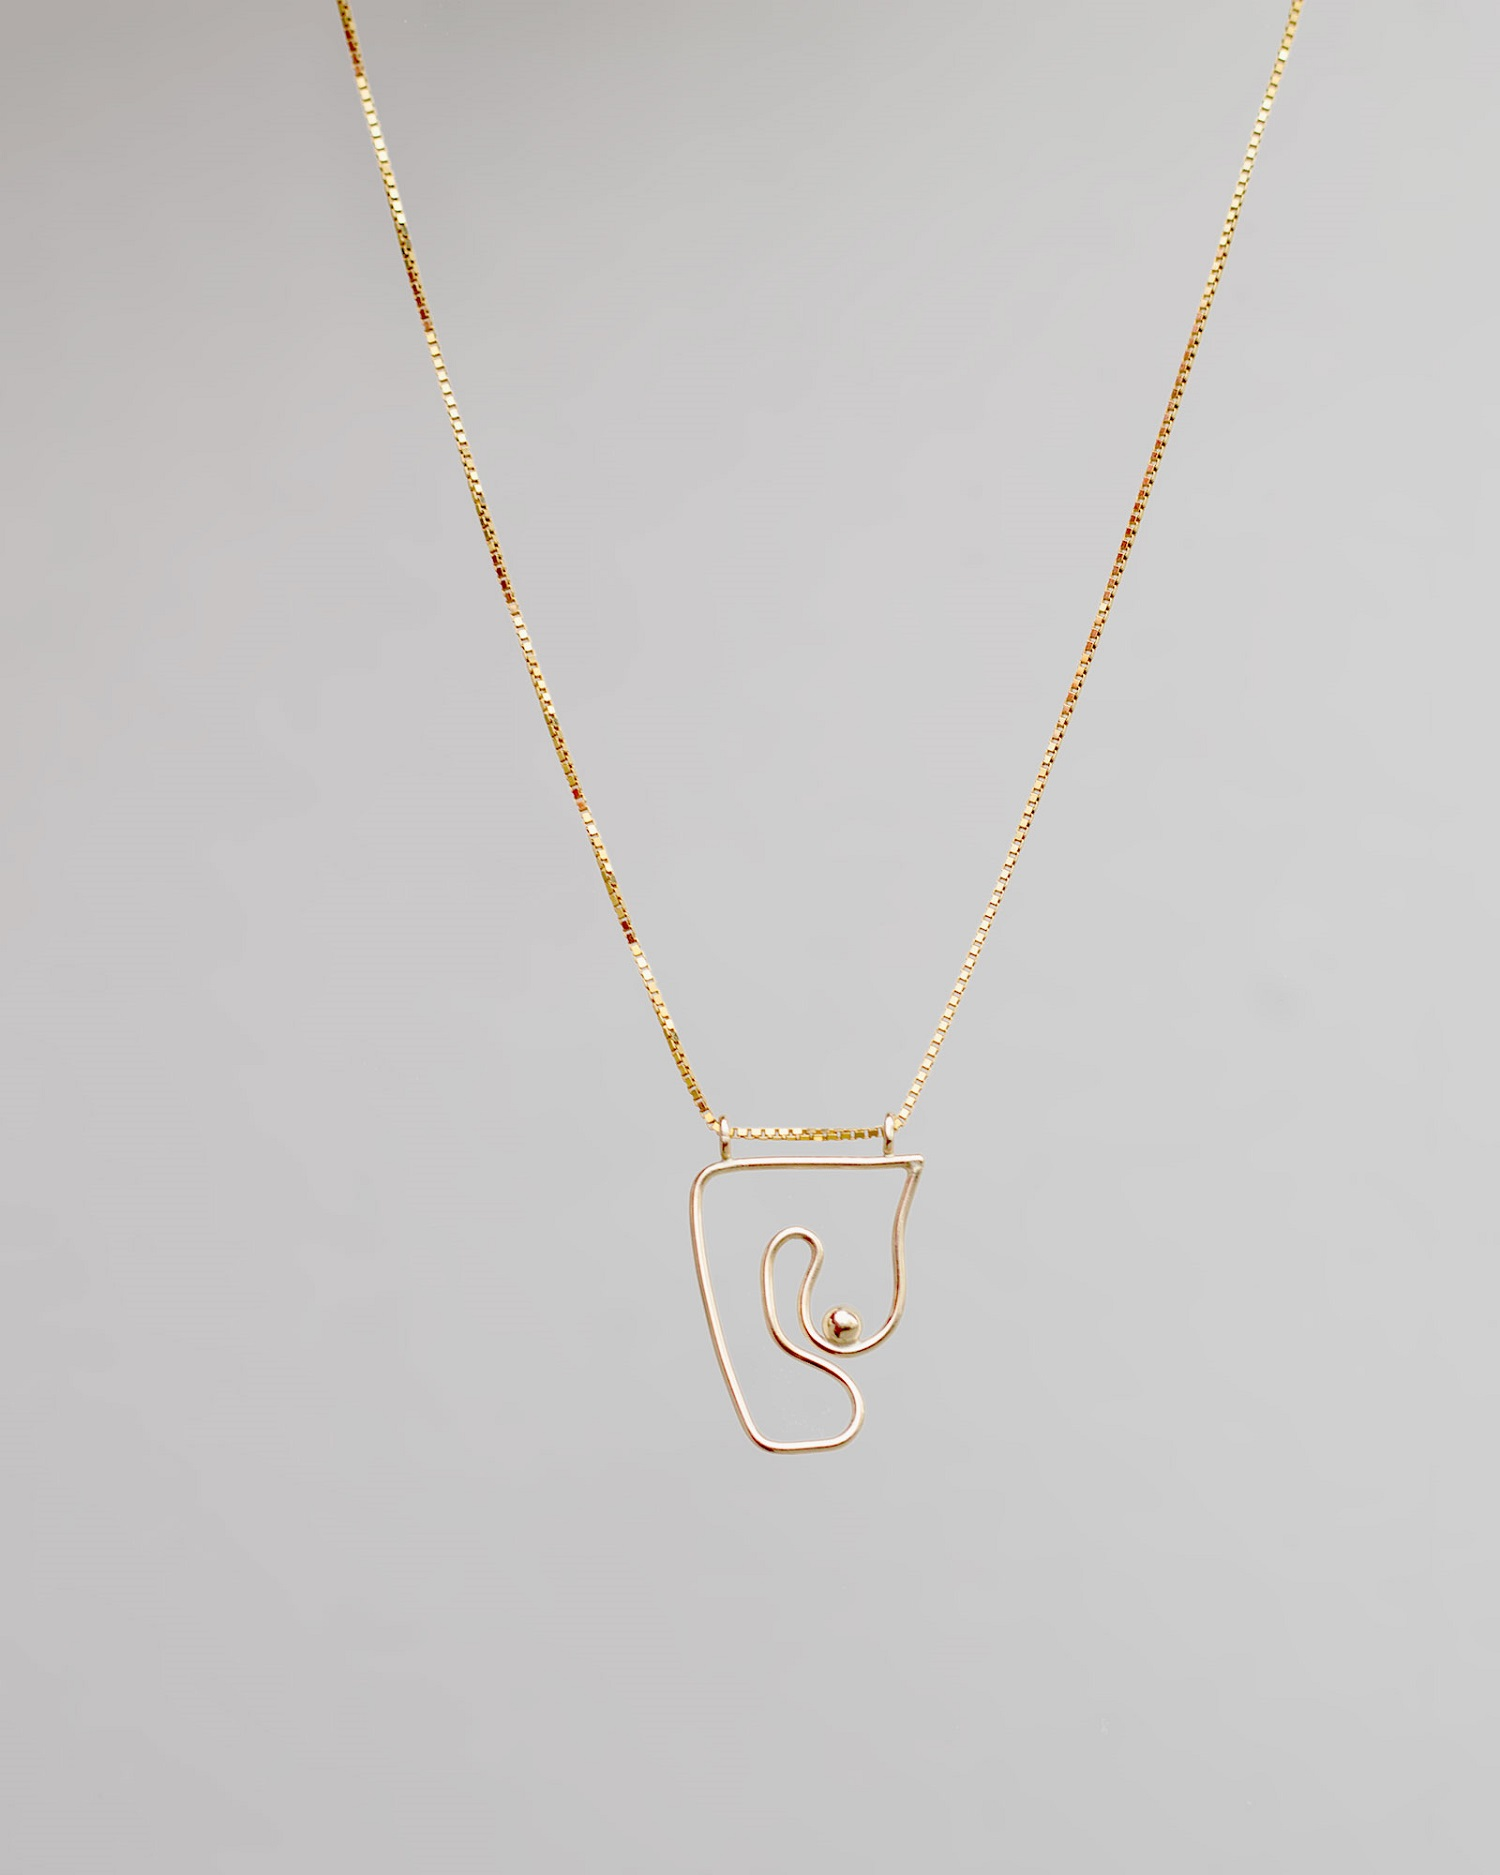 deconstructed-nude-necklace-product-website